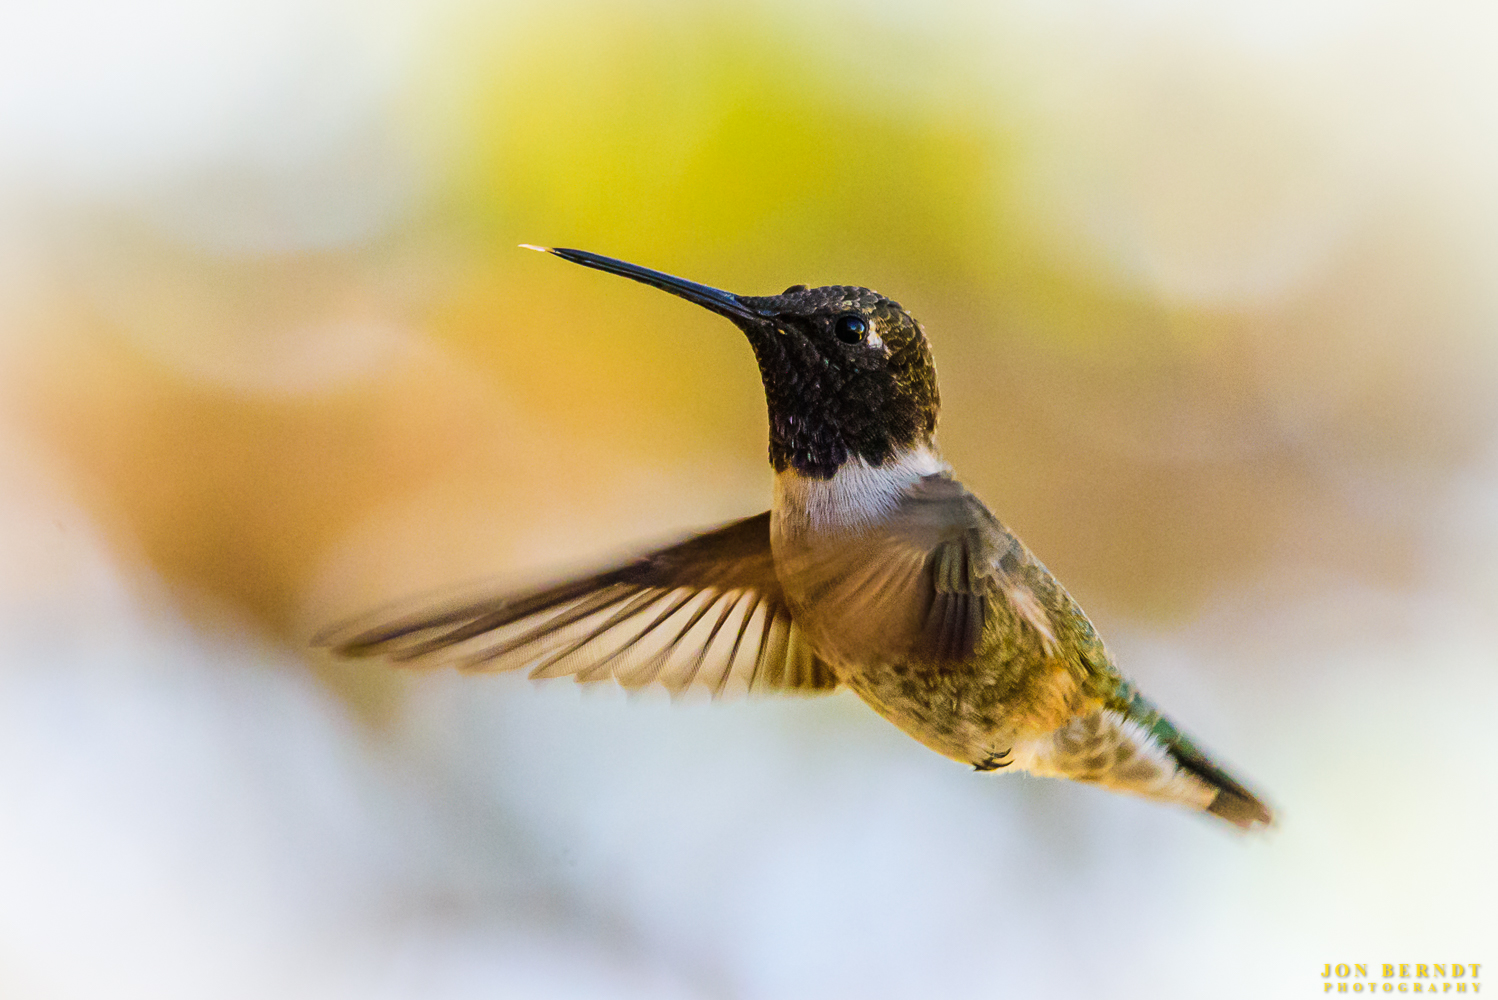 """A Costa's hummingbird (maybe) in flight. The hum of these birds can be startling! They sound too much like bumblebees! But they are fun to watch and a challenge to photograph in flight. From  Audubon.org : """" The desert might seem like a bad place for a creature that feeds at flowers, but it is the favored habitat for Costa's Hummingbird. In Arizona and California deserts, this species nests during late winter and spring, and most then avoid the hot summer by migrating to coastal California and Baja. The thin, high-pitched whistle of the male is often heard over desert washes in early spring.  """""""